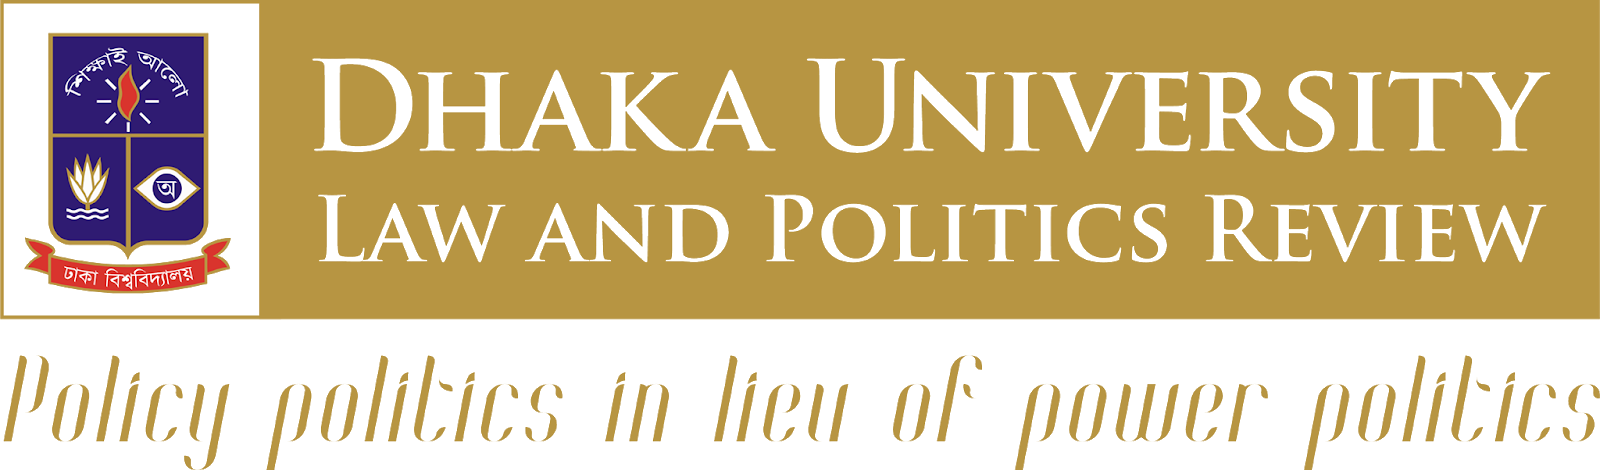 Dhaka University Law and Politics Review